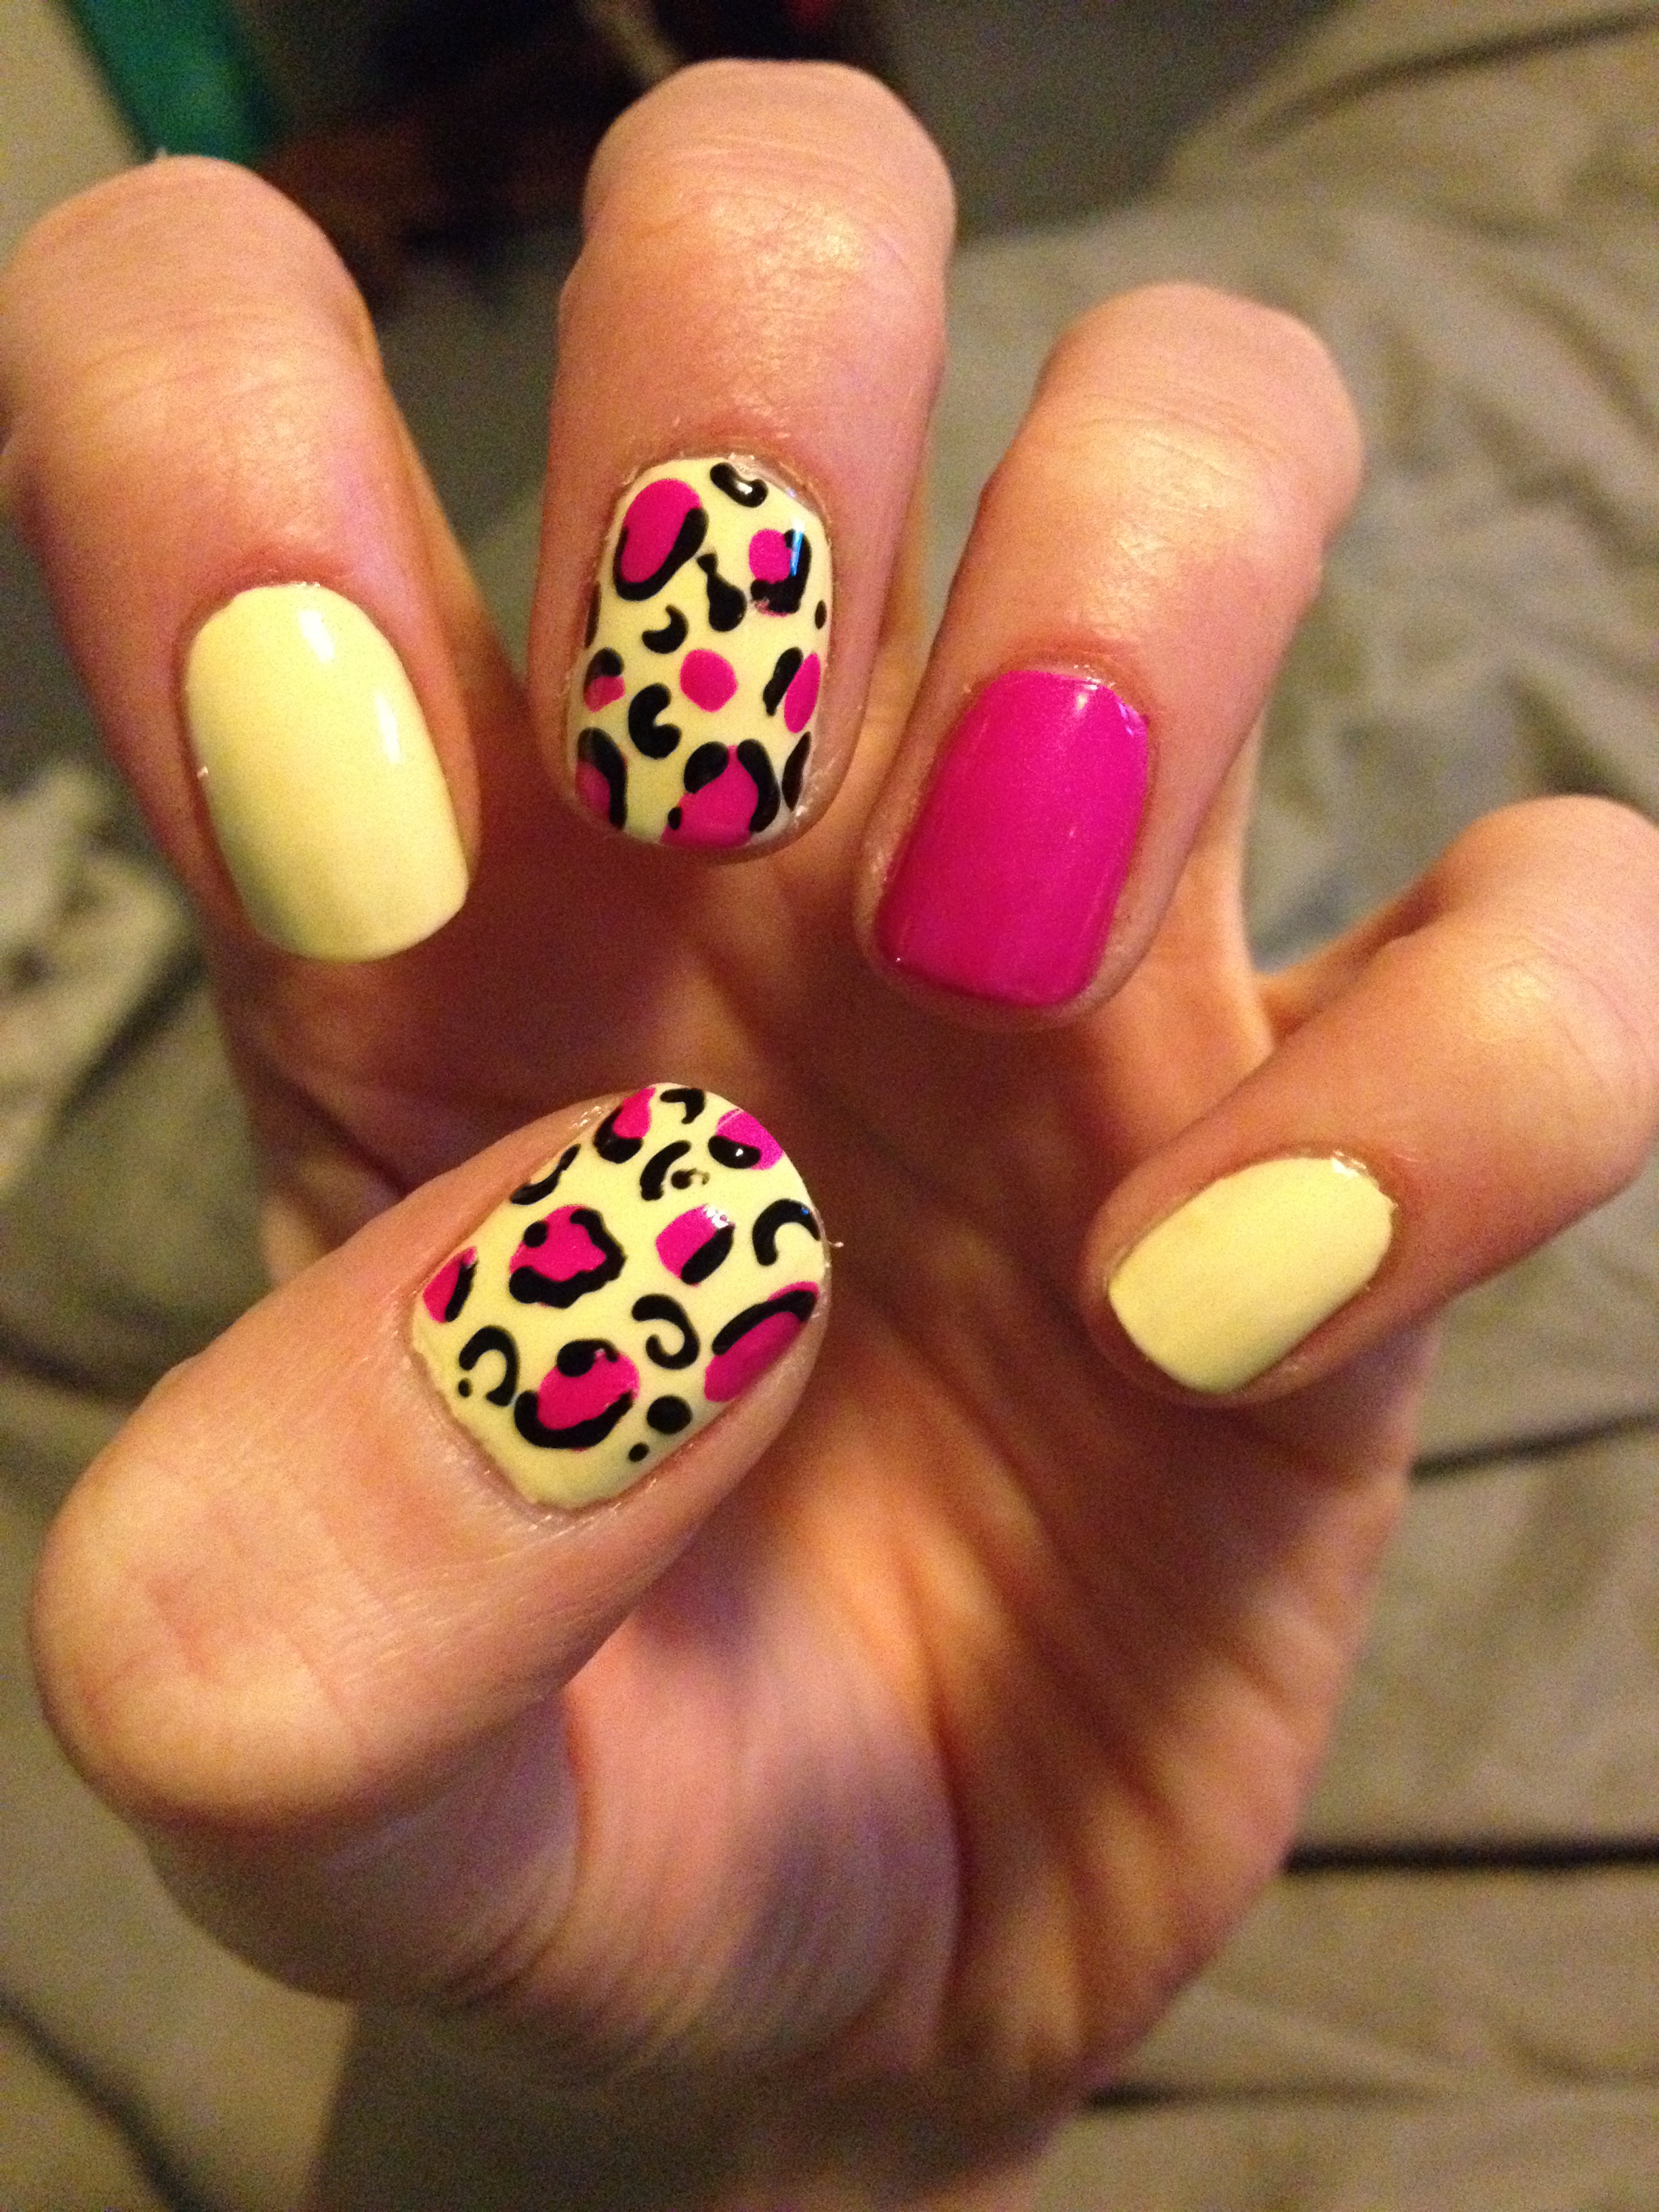 Cheetah nails tutorial courtneys craftincookin image prinsesfo Images